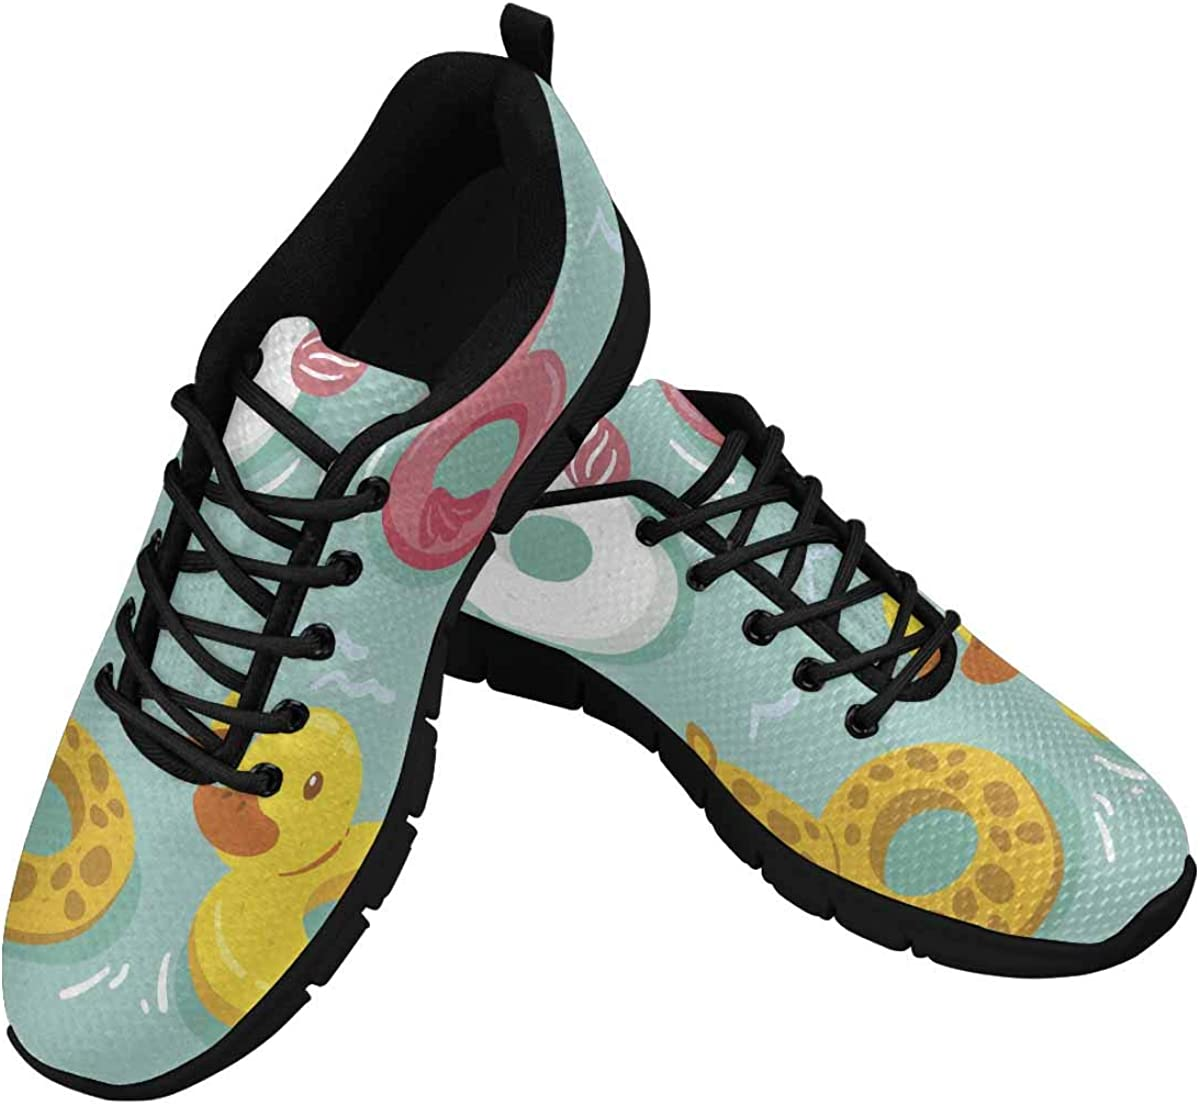 InterestPrint Pool Toys Women's Athletic Mesh Breathable Casual Sneakers Fashion Tennis Shoes